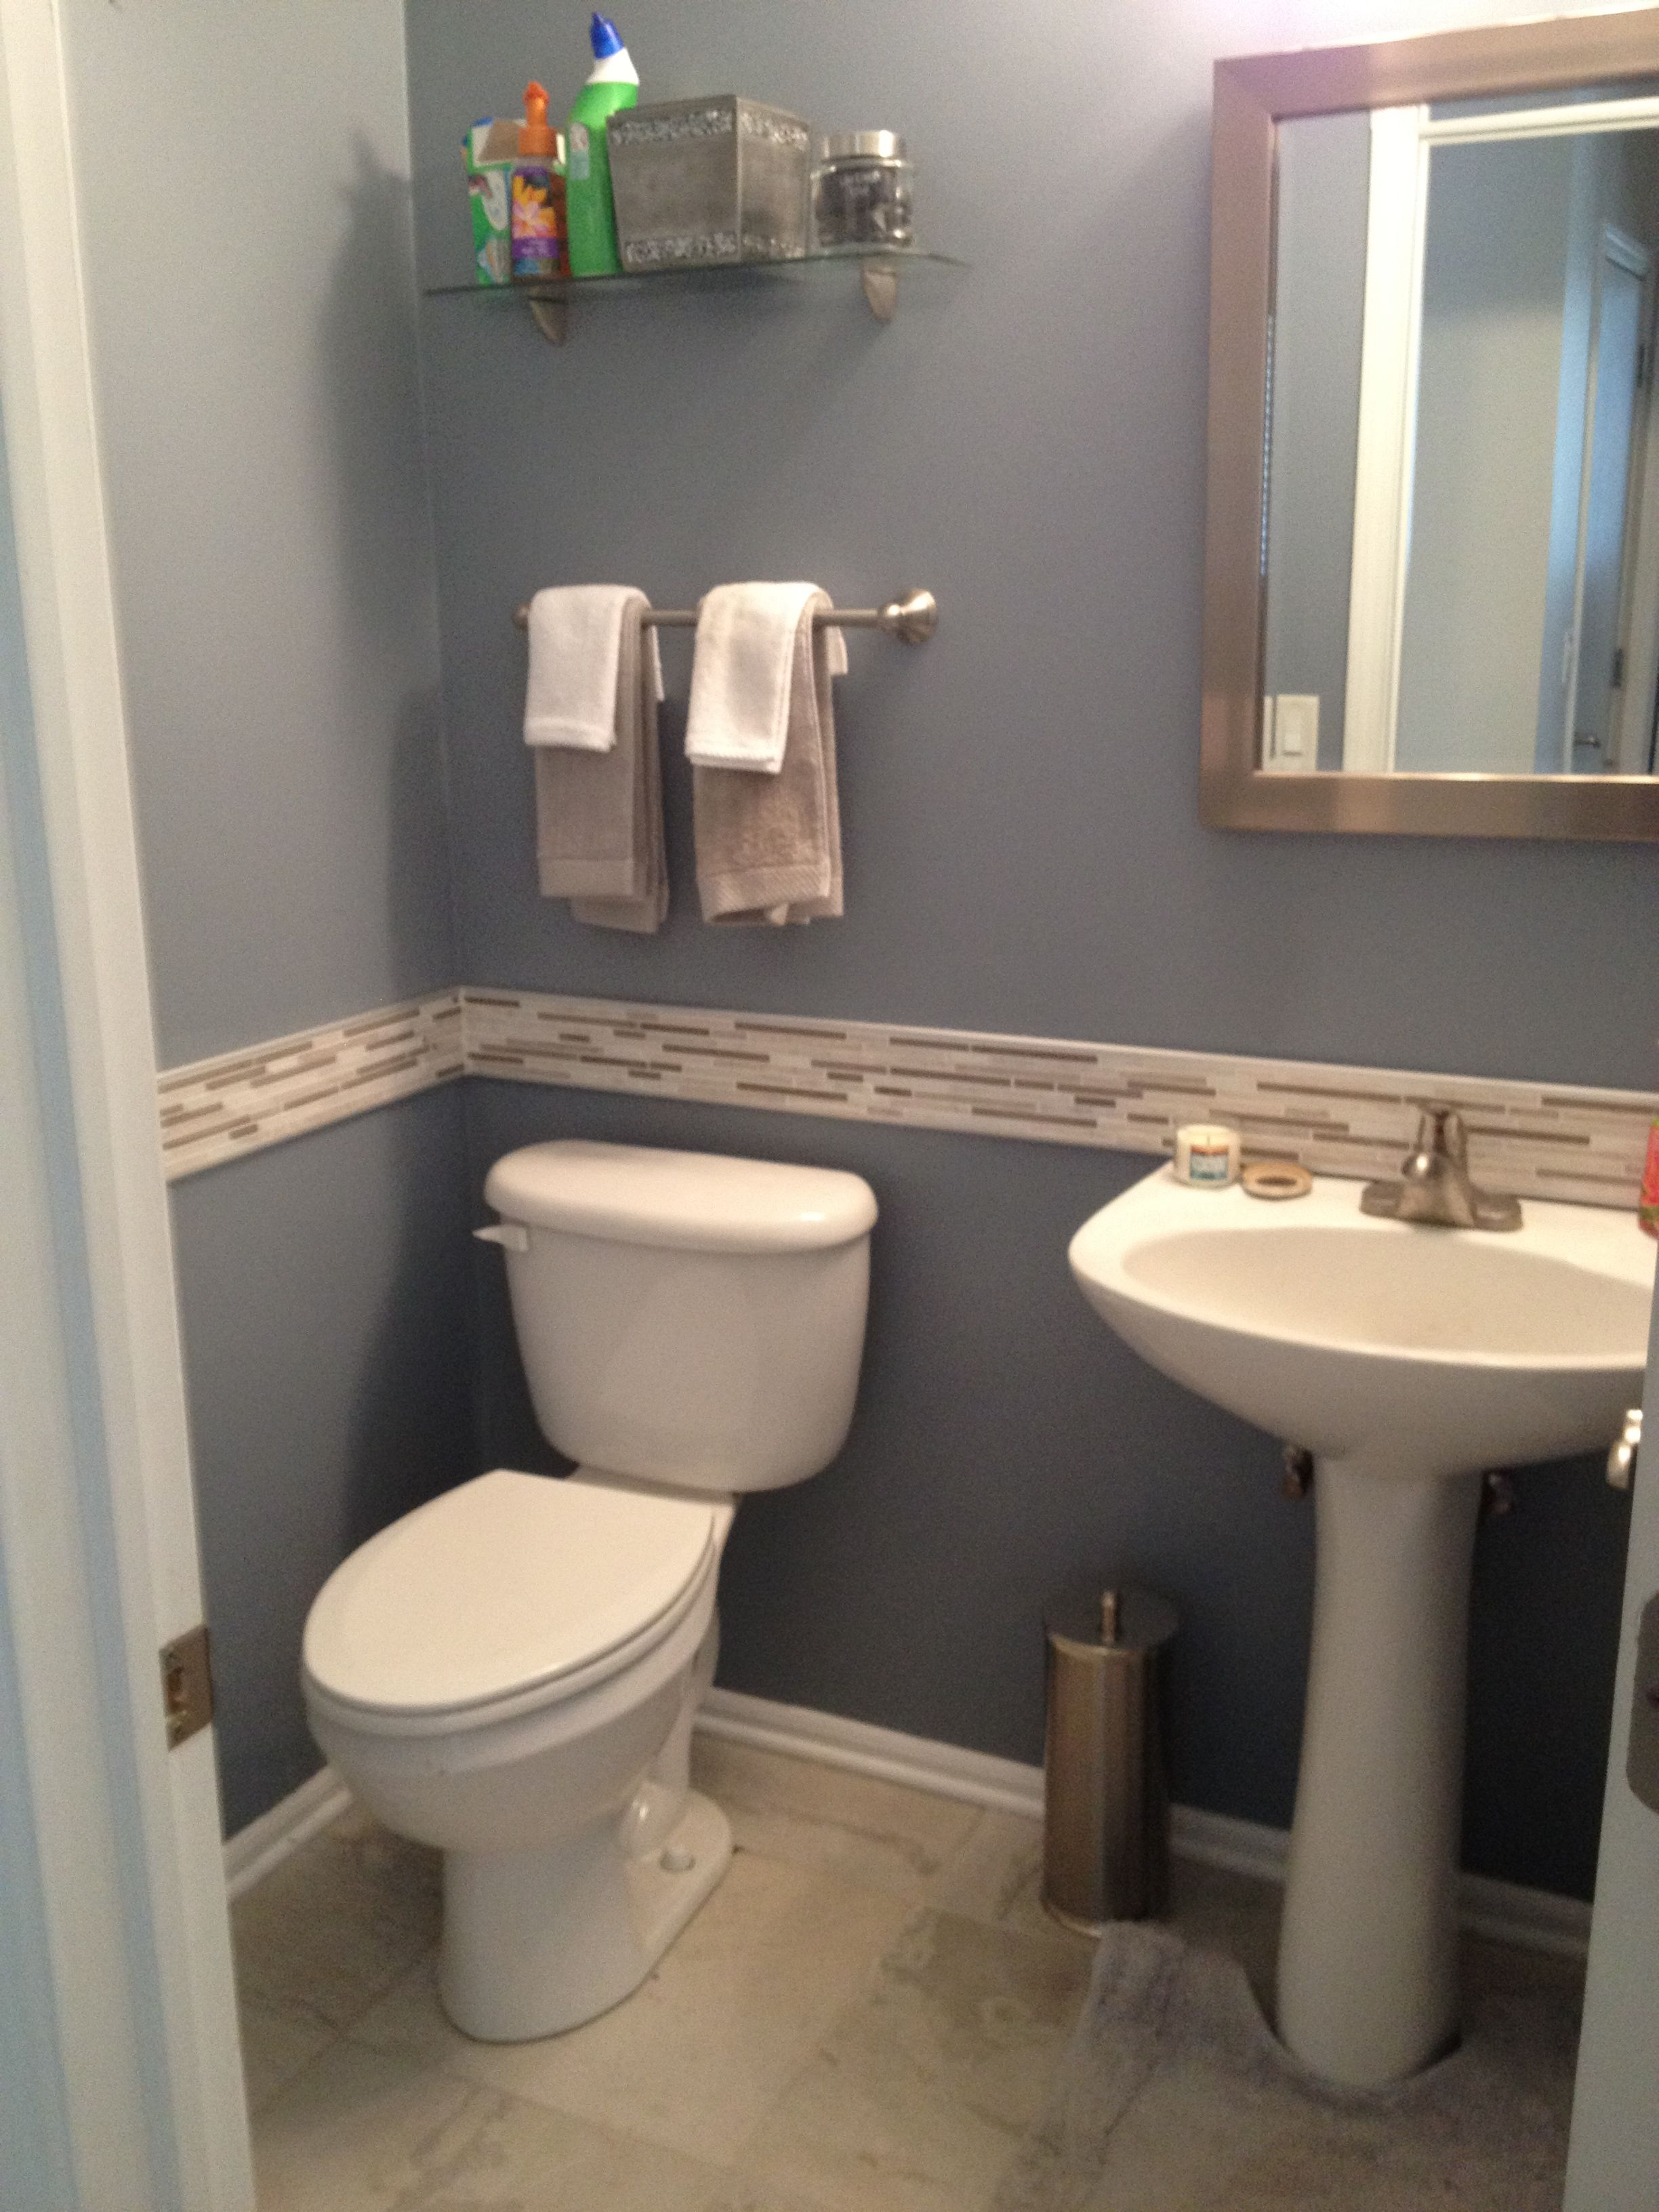 Half bath remodel my life projects pinterest half for Restroom renovation ideas